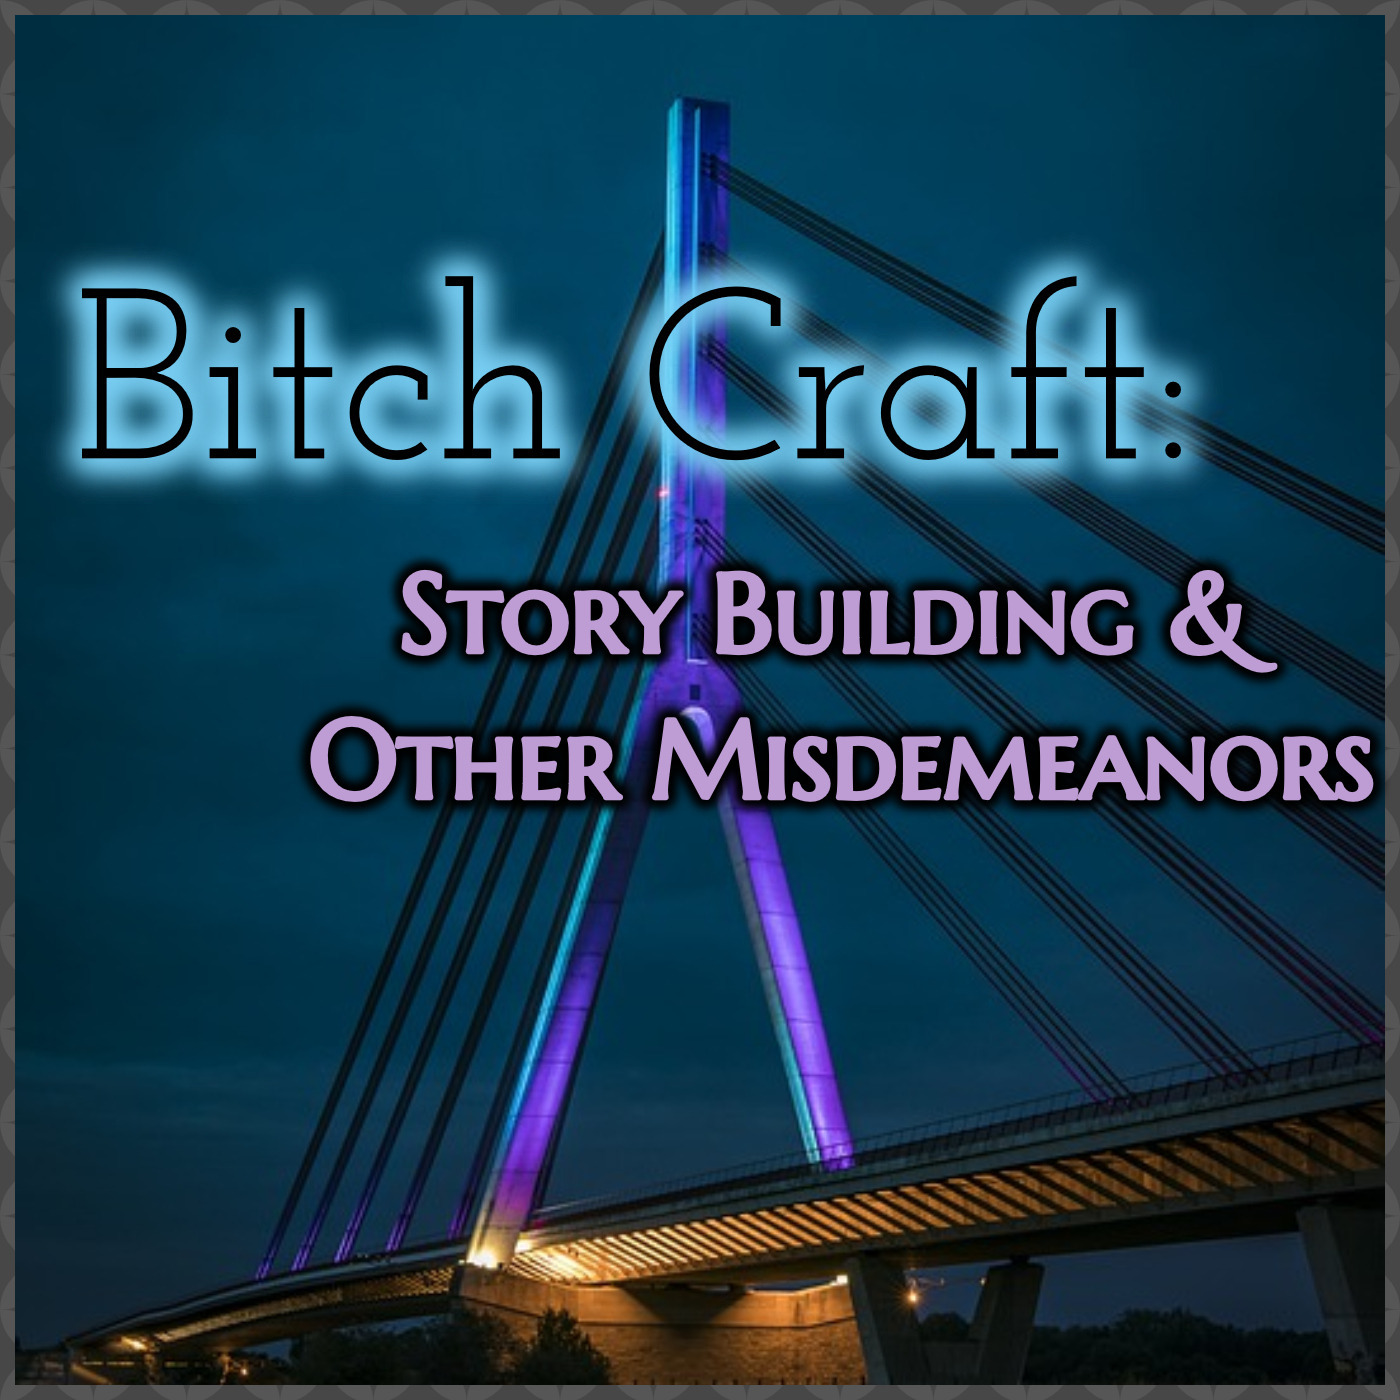 Bitch Craft: Story Building & Other Misdemeanors